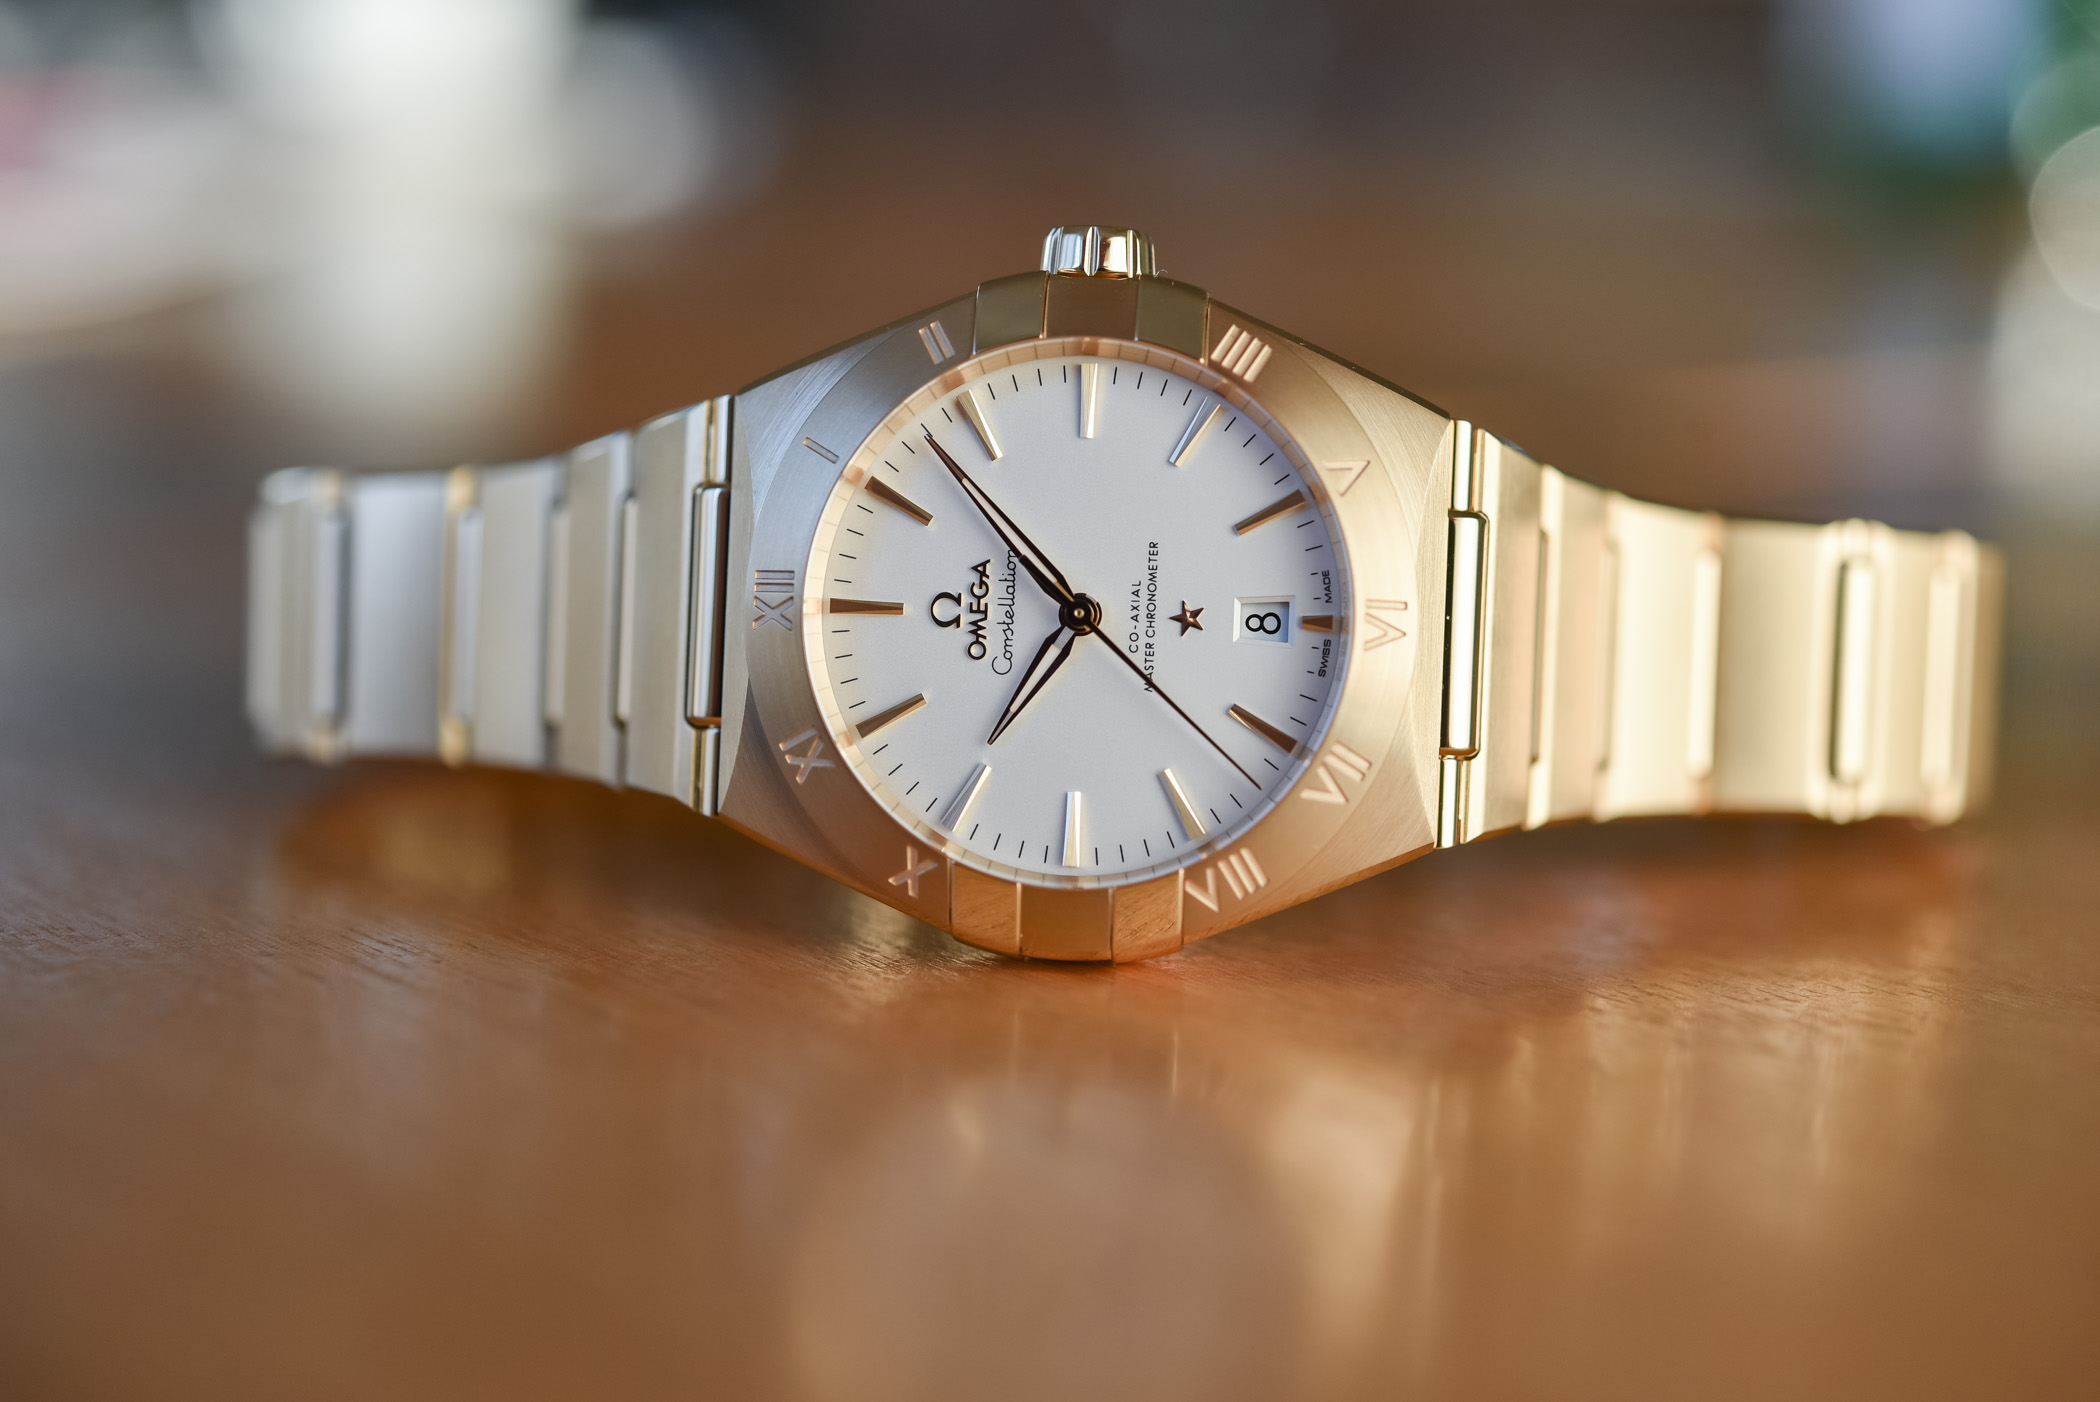 2020-Omega-Constellation-Co-Axial-Master-Chronometer-39mm-review-1.jpg